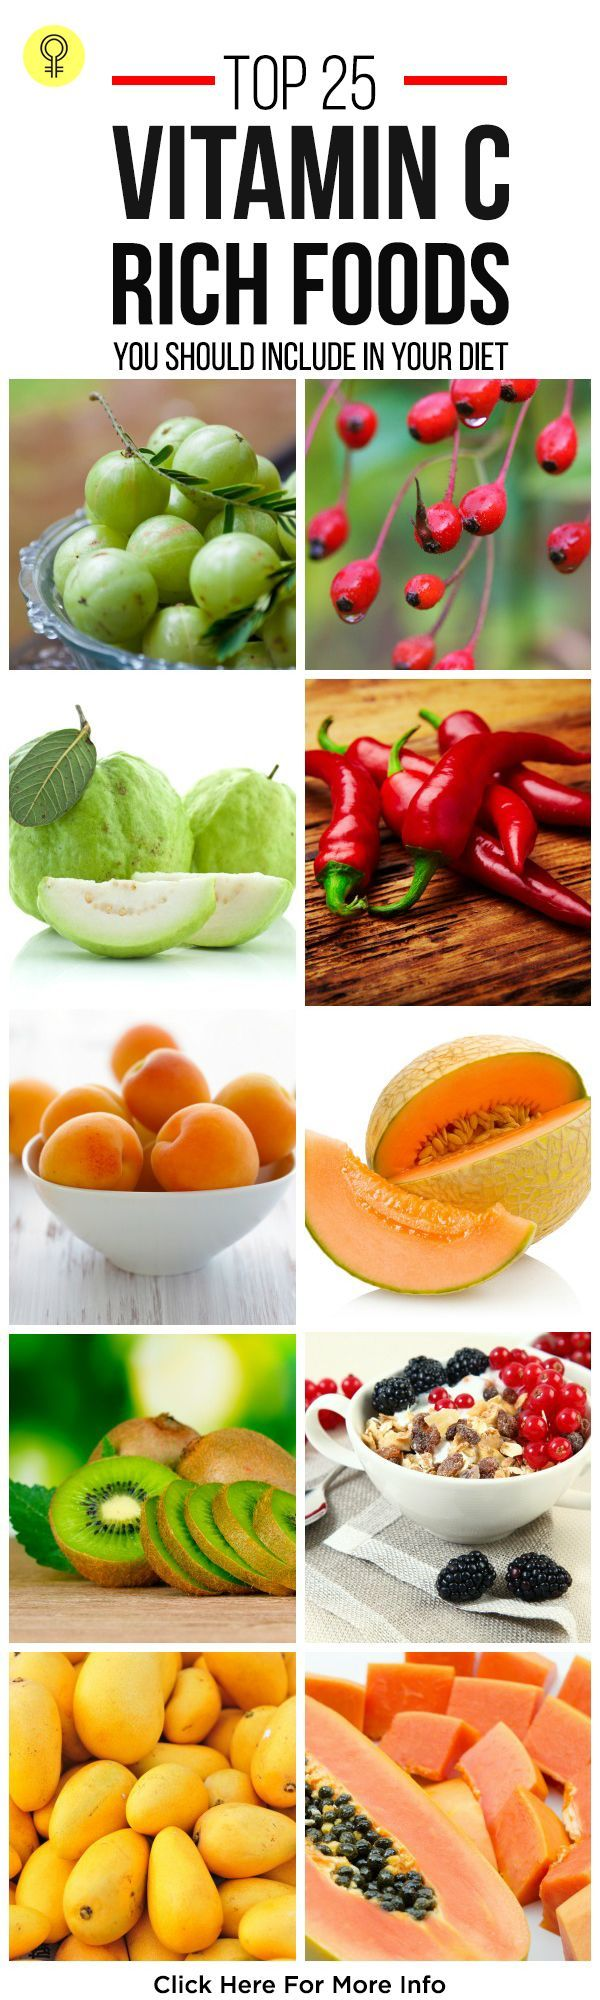 Top 25 Vitamin A Rich Foods forecasting